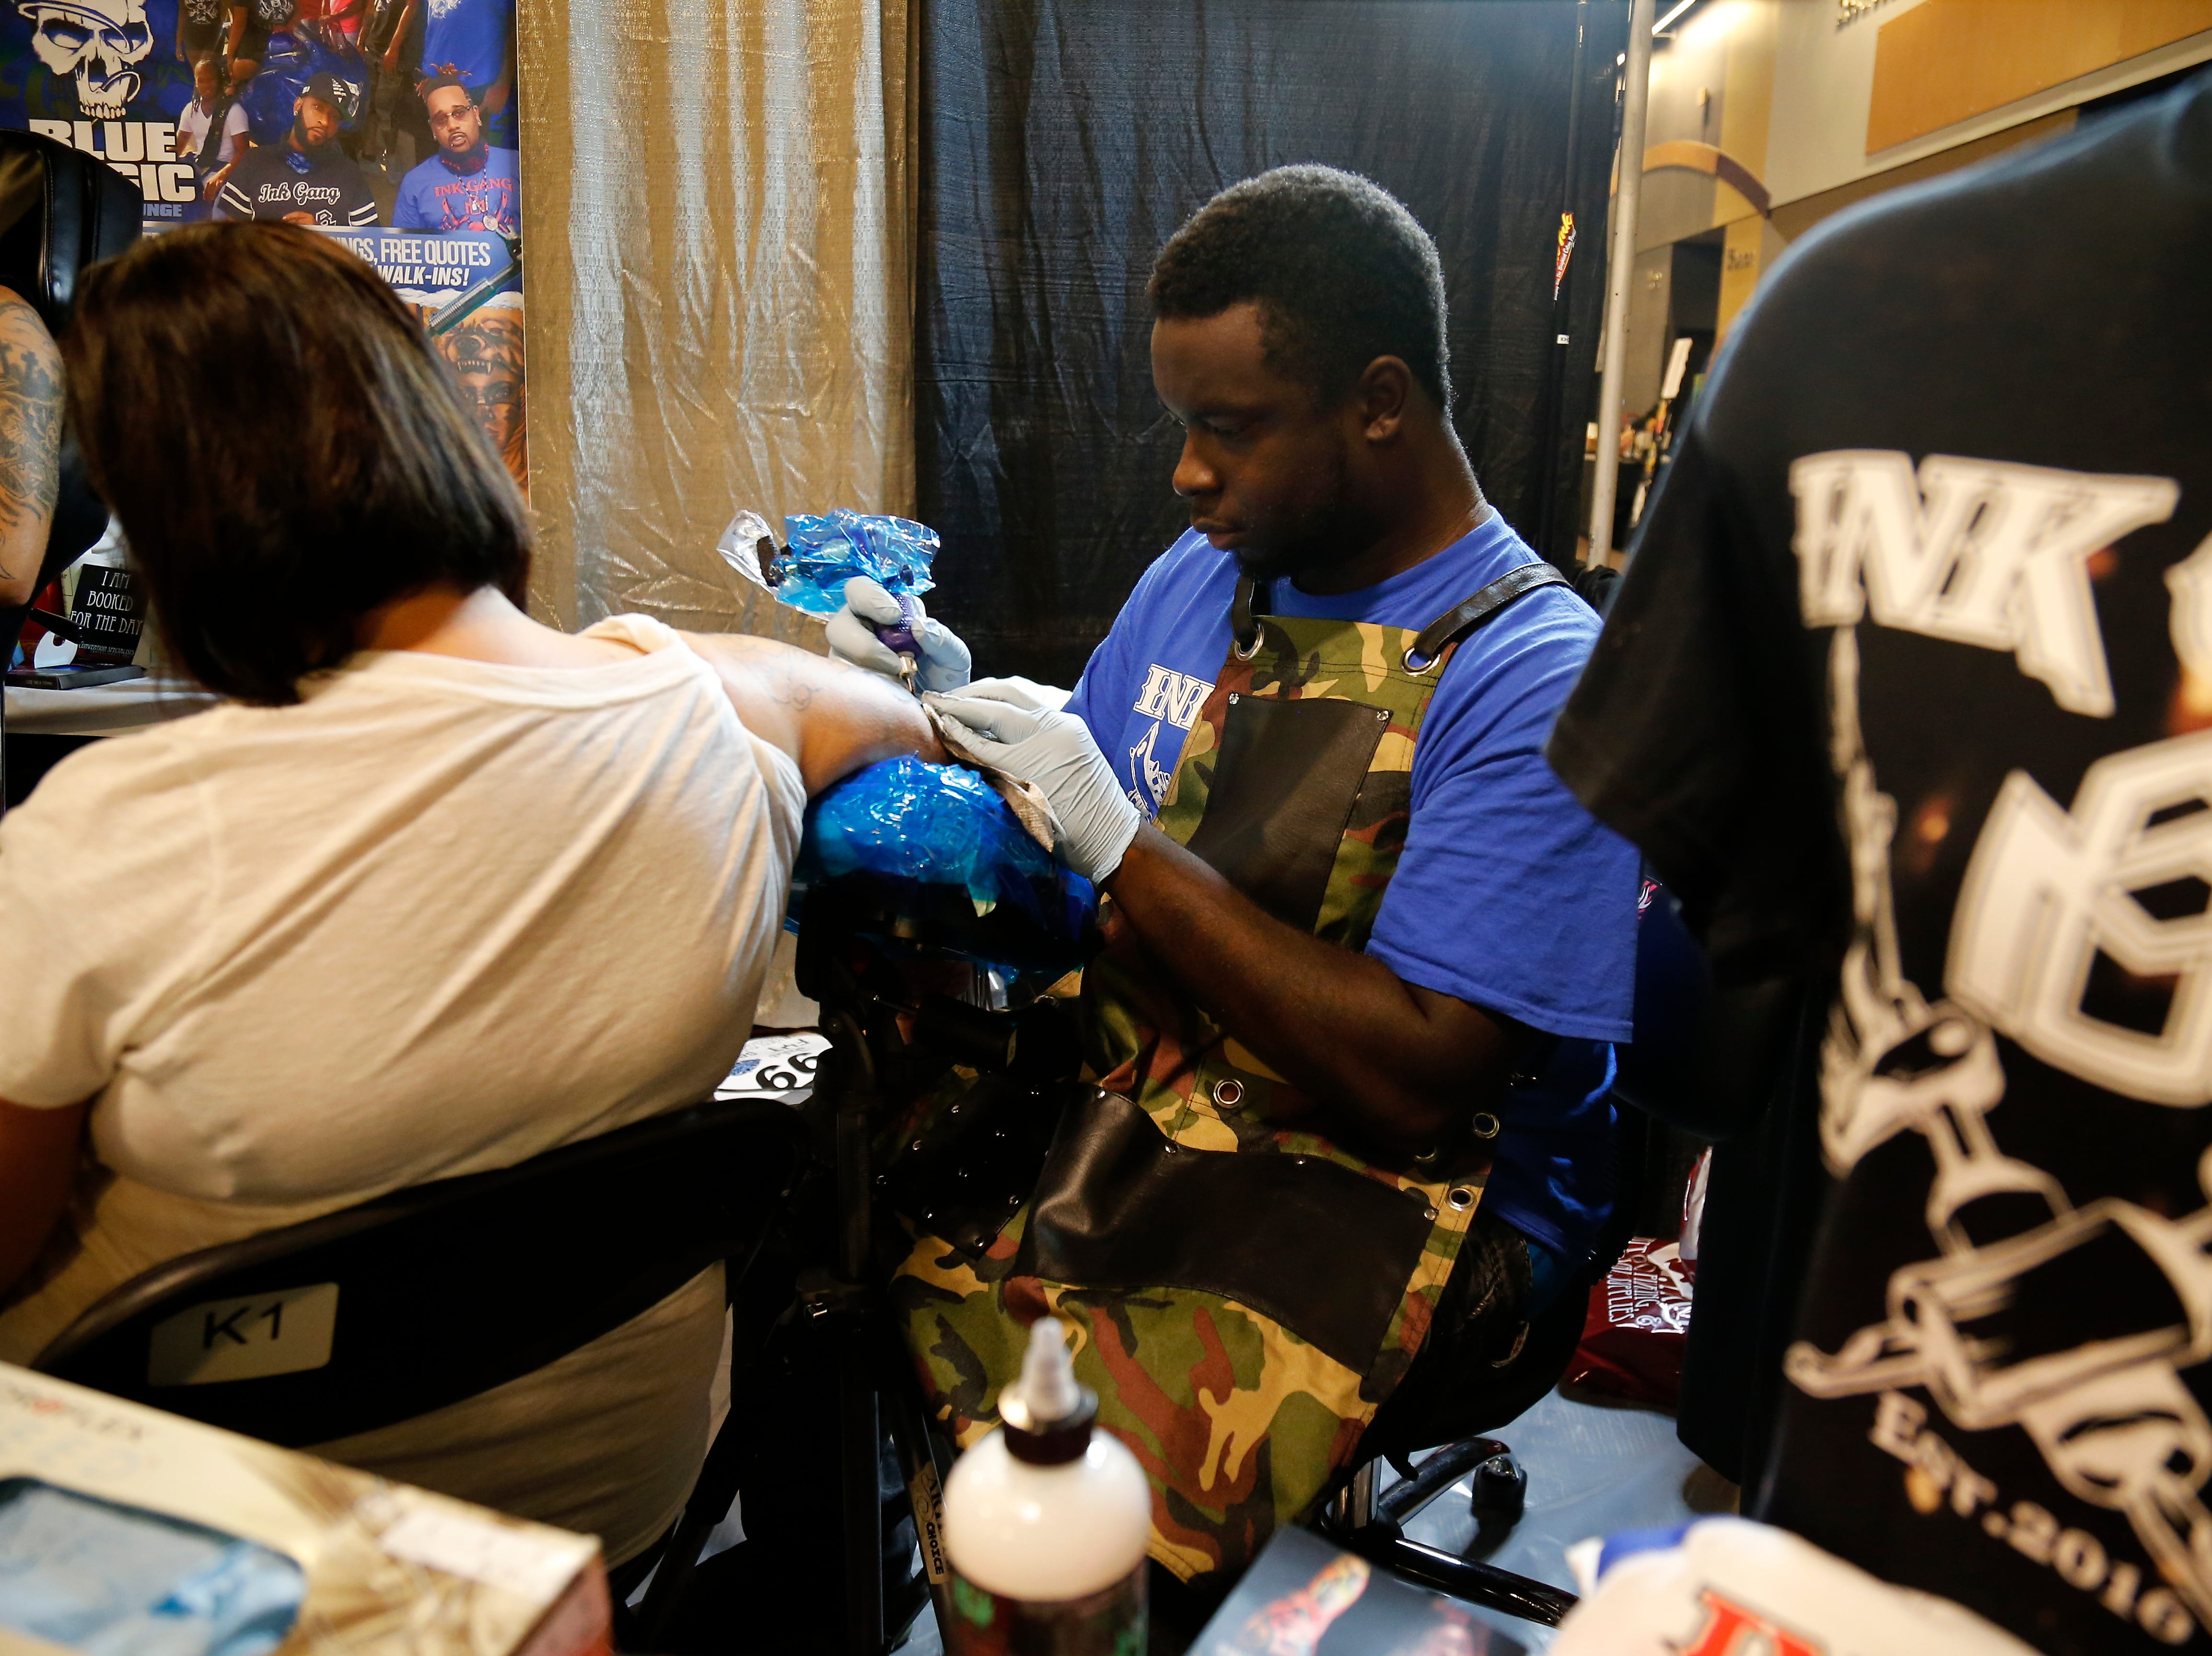 Demetrius Coleman of Blue Magic Tattoo Lounge in Cincinnati tattoos during the Greater Cincinnati Tattoo Arts Convention at the Northern Kentucky Convention Center in Covington, Ky., on Friday, Sept. 7, 2018.